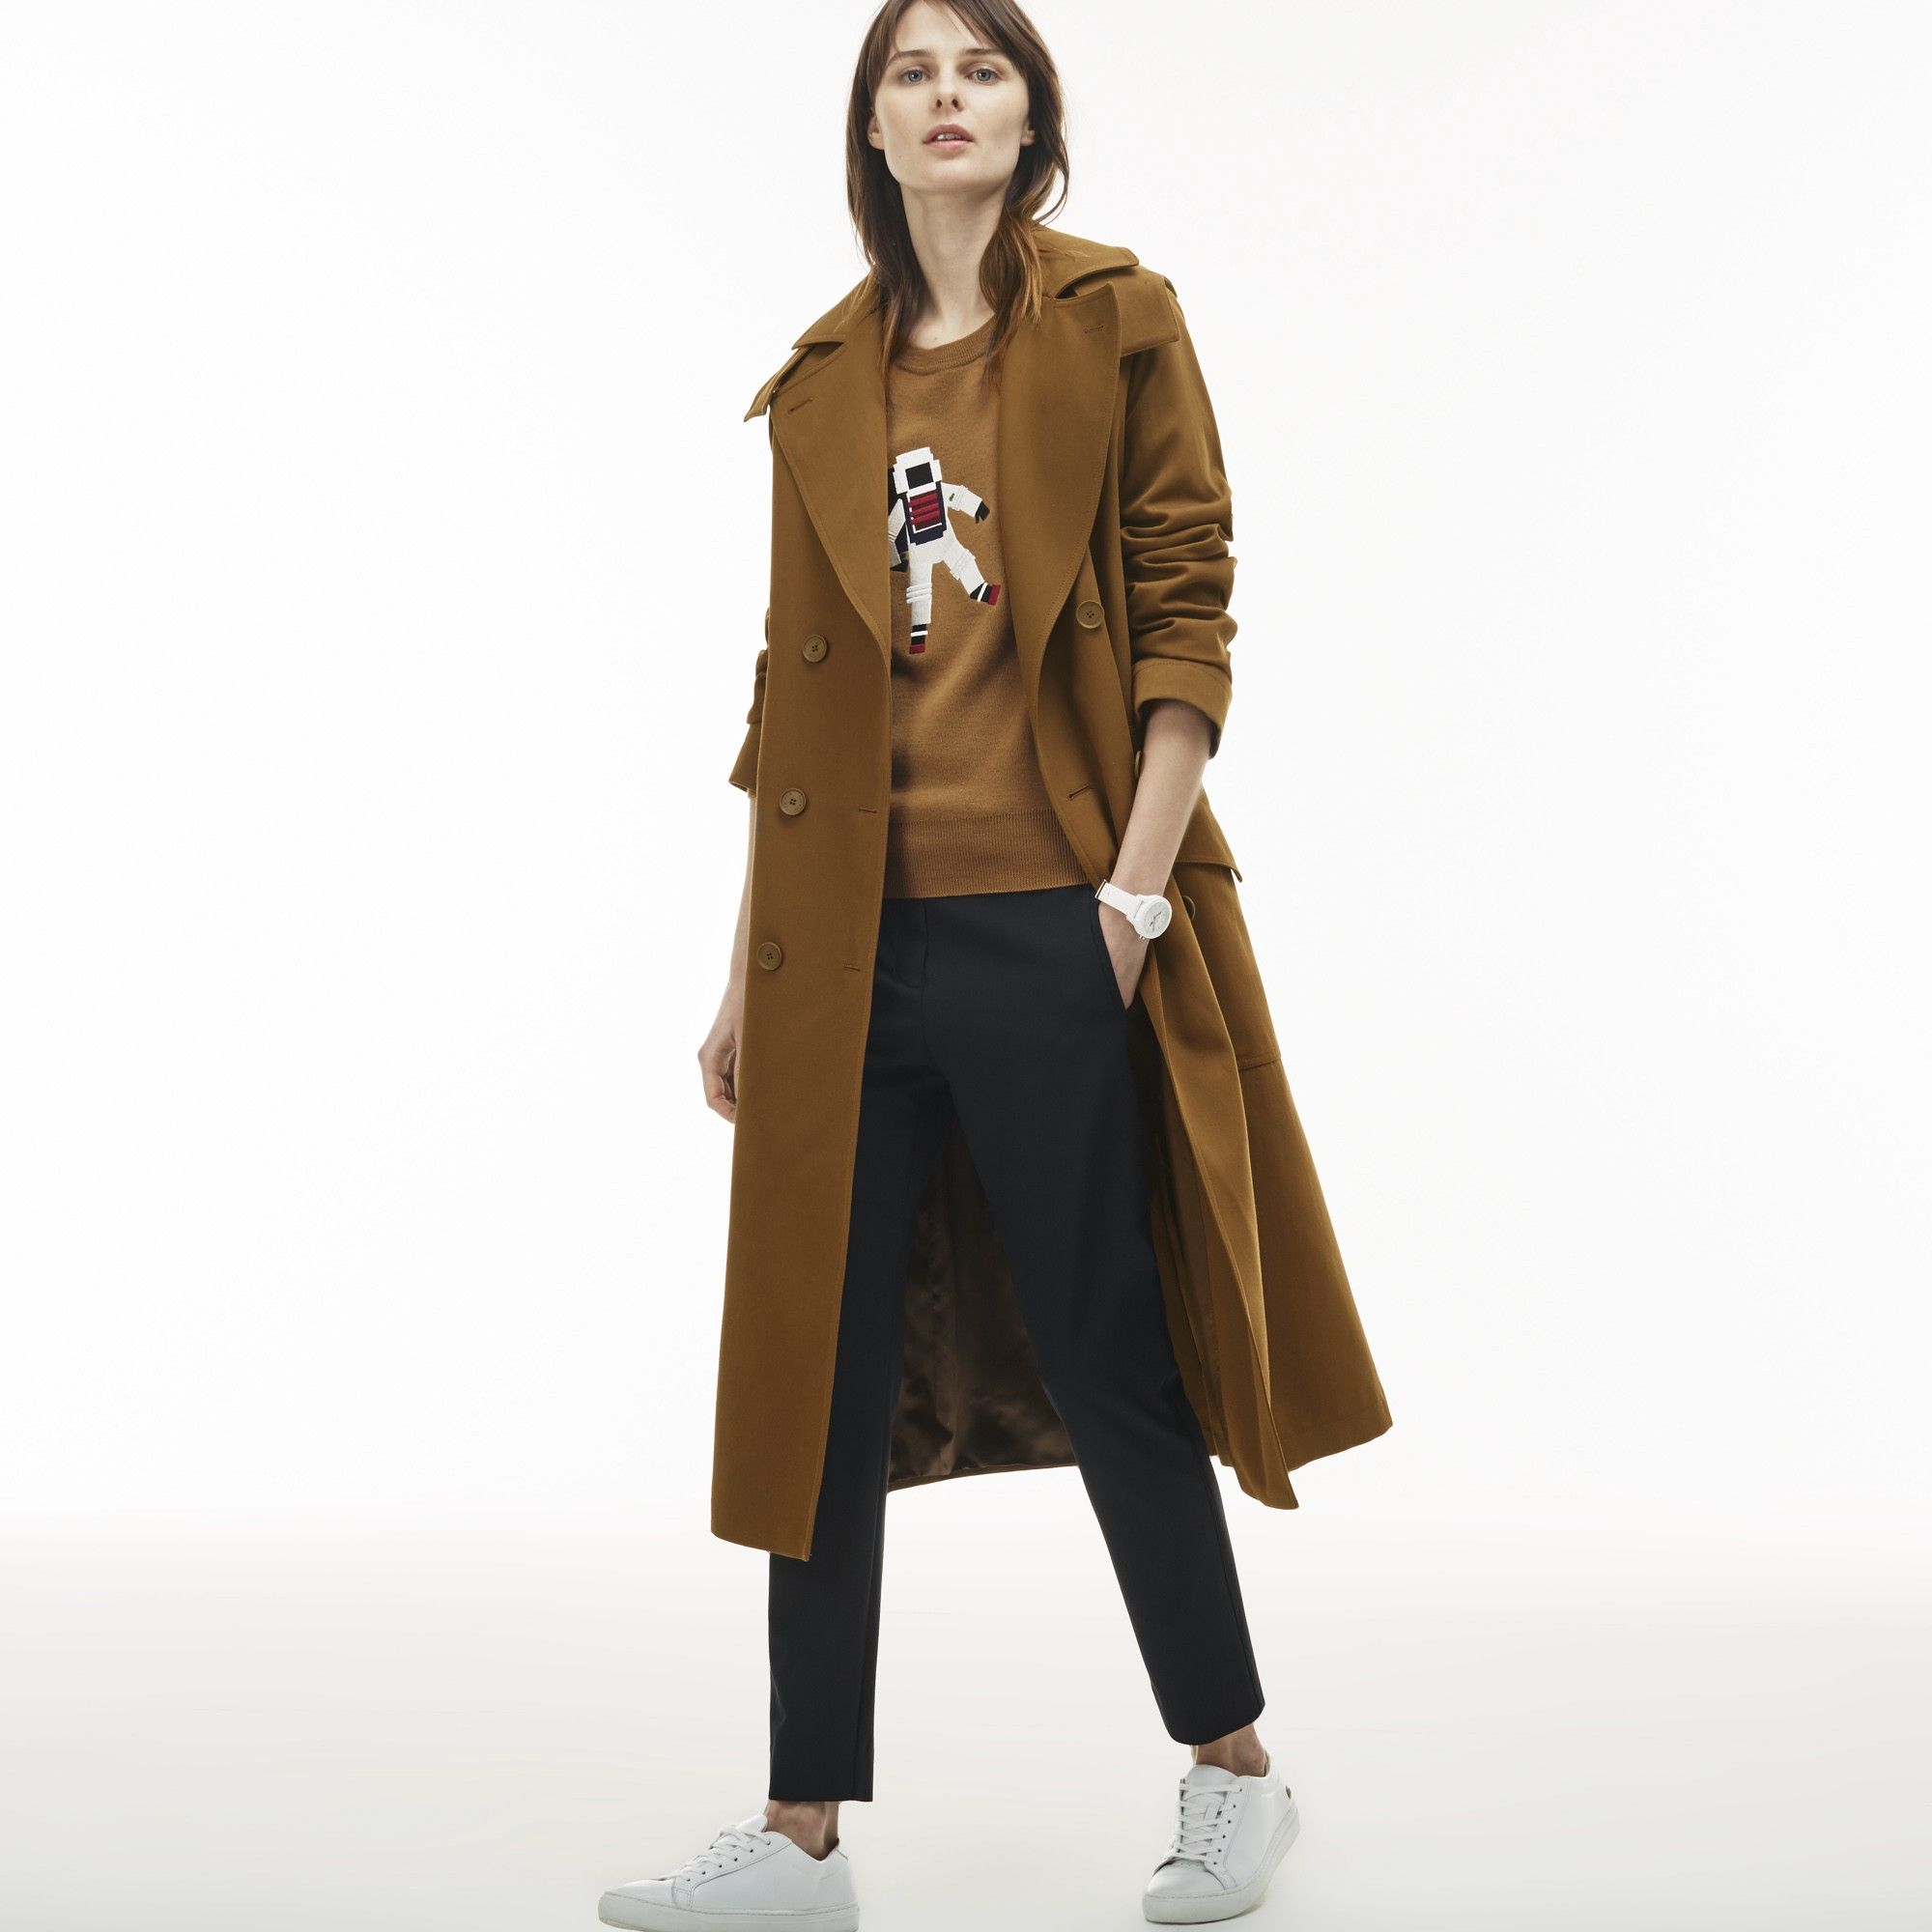 51fb47df575 LACOSTE Women s Detachable Hood Gabardine Wraparound Trench Coat - DARK  RENAISSANCE BROWN.  lacoste  cloth